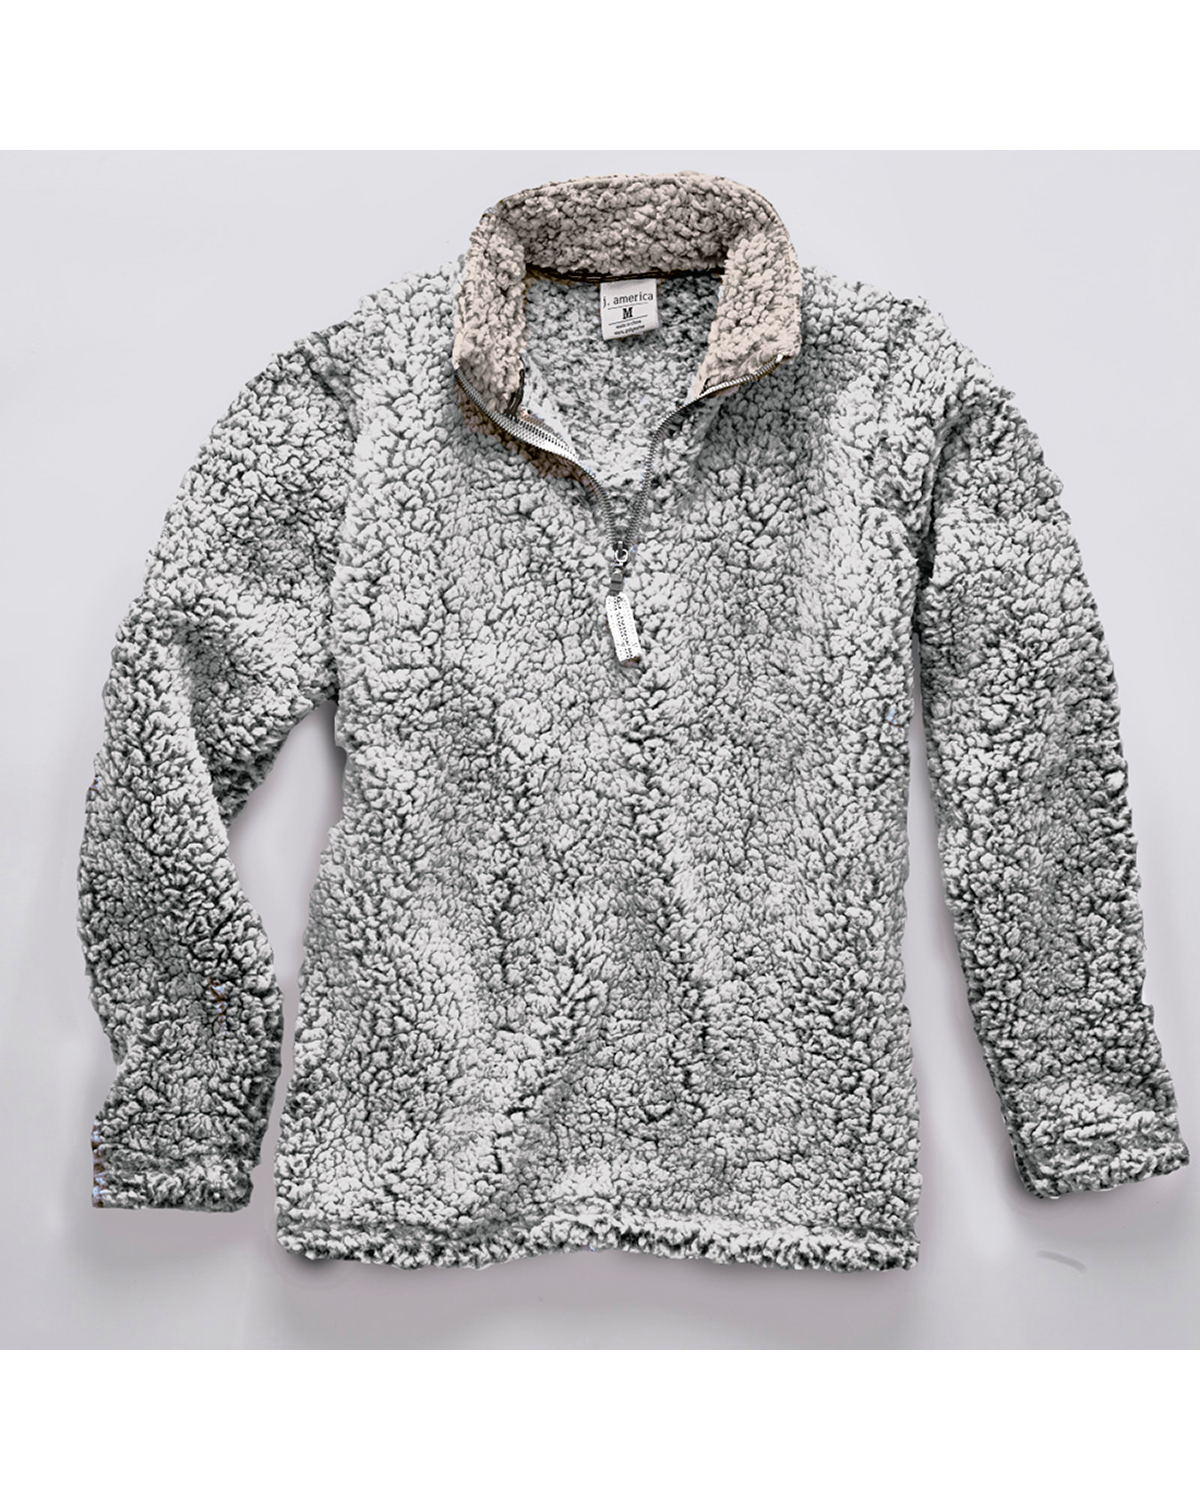 J. America 8454 - Adult Epic Sherpa Quarter-Zip